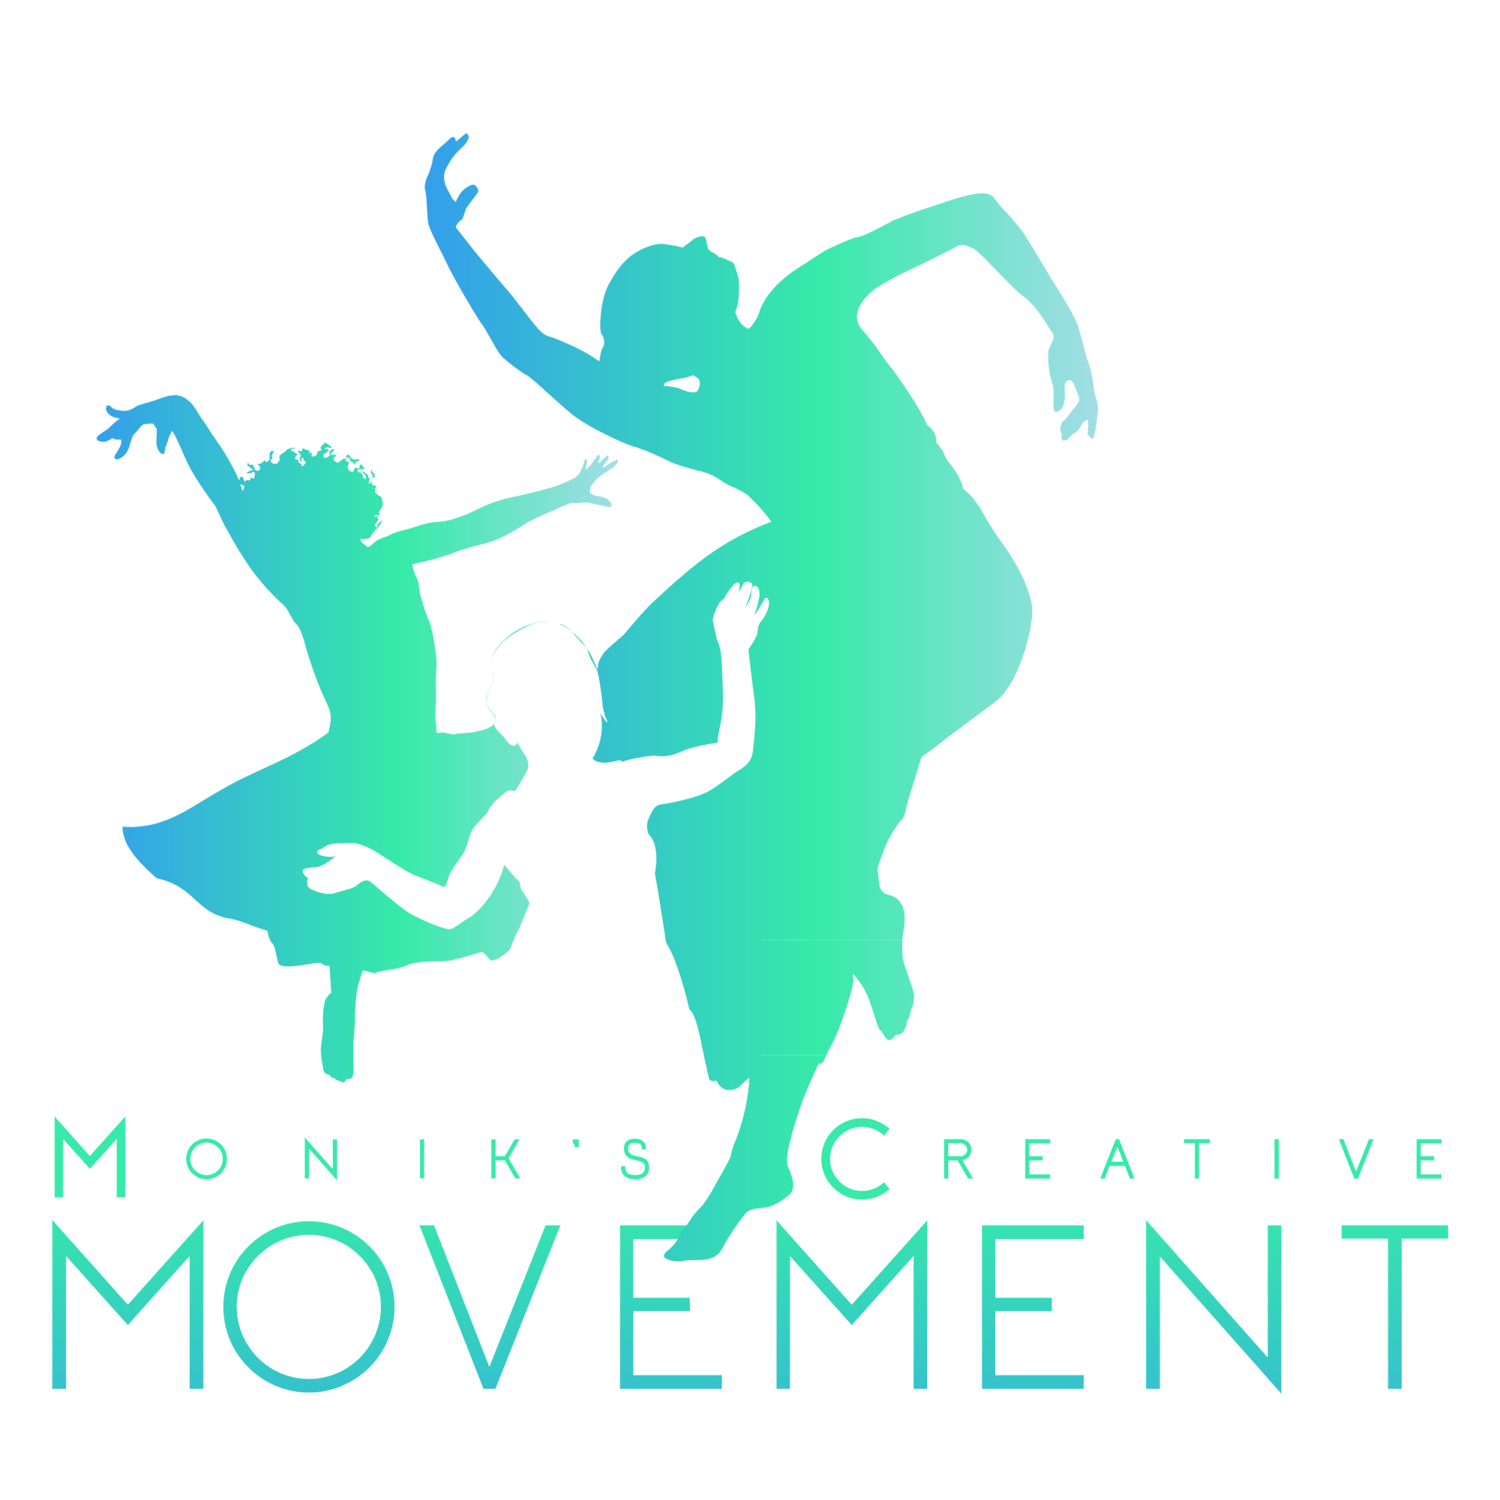 Dance Education | Monik's Creative Movement | So Cal